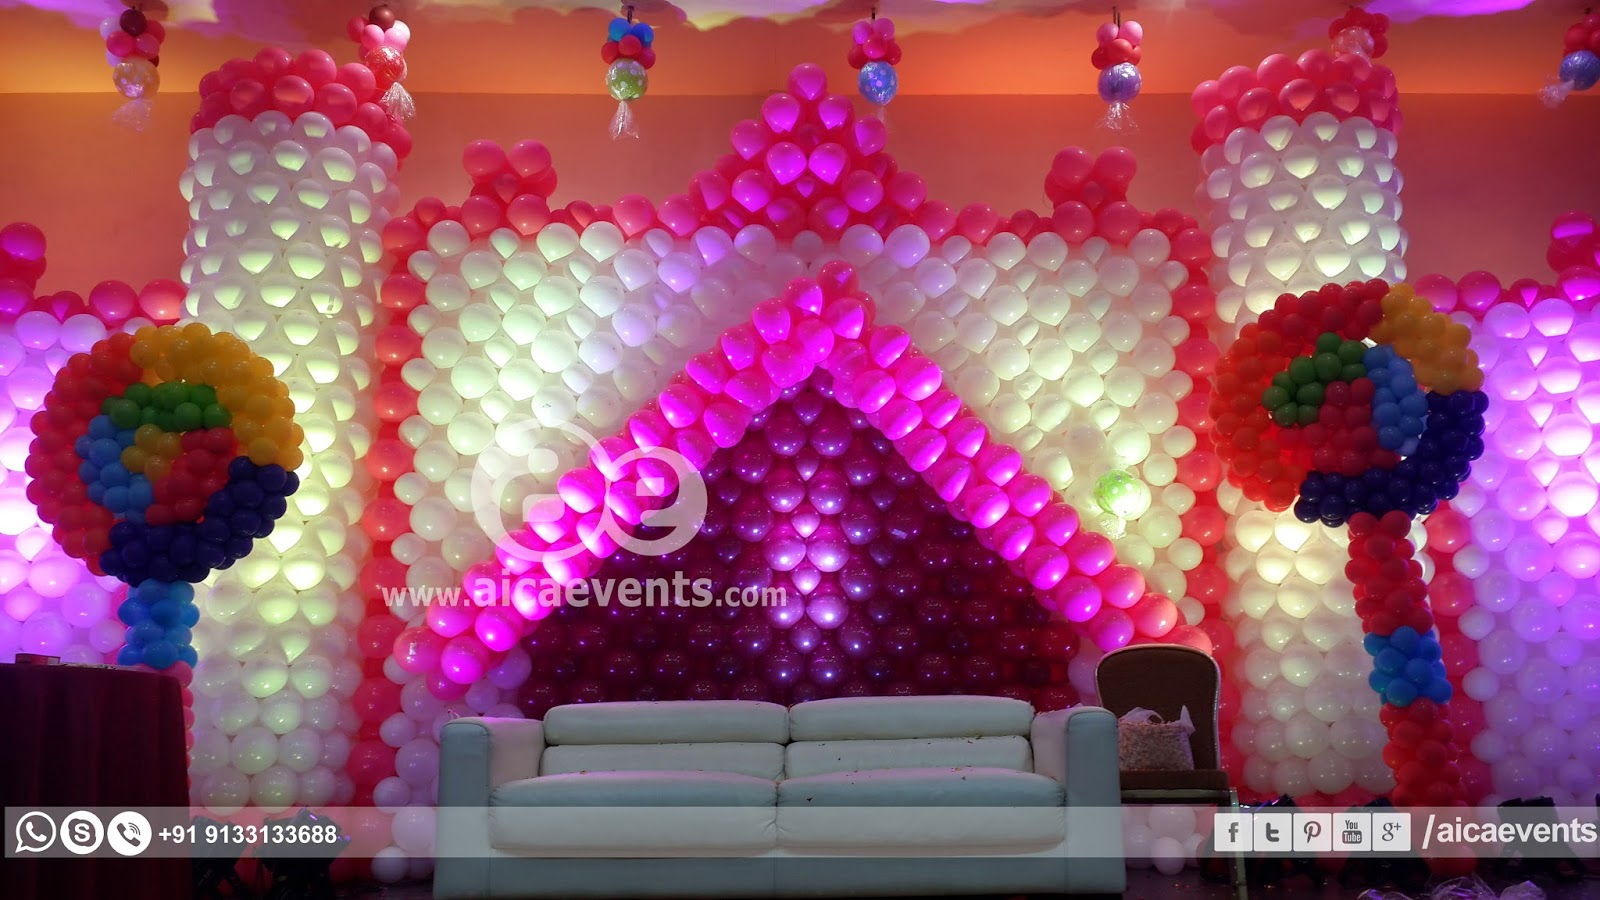 Wall Decoration For Event : Aicaevents castle with balloon wall decoration